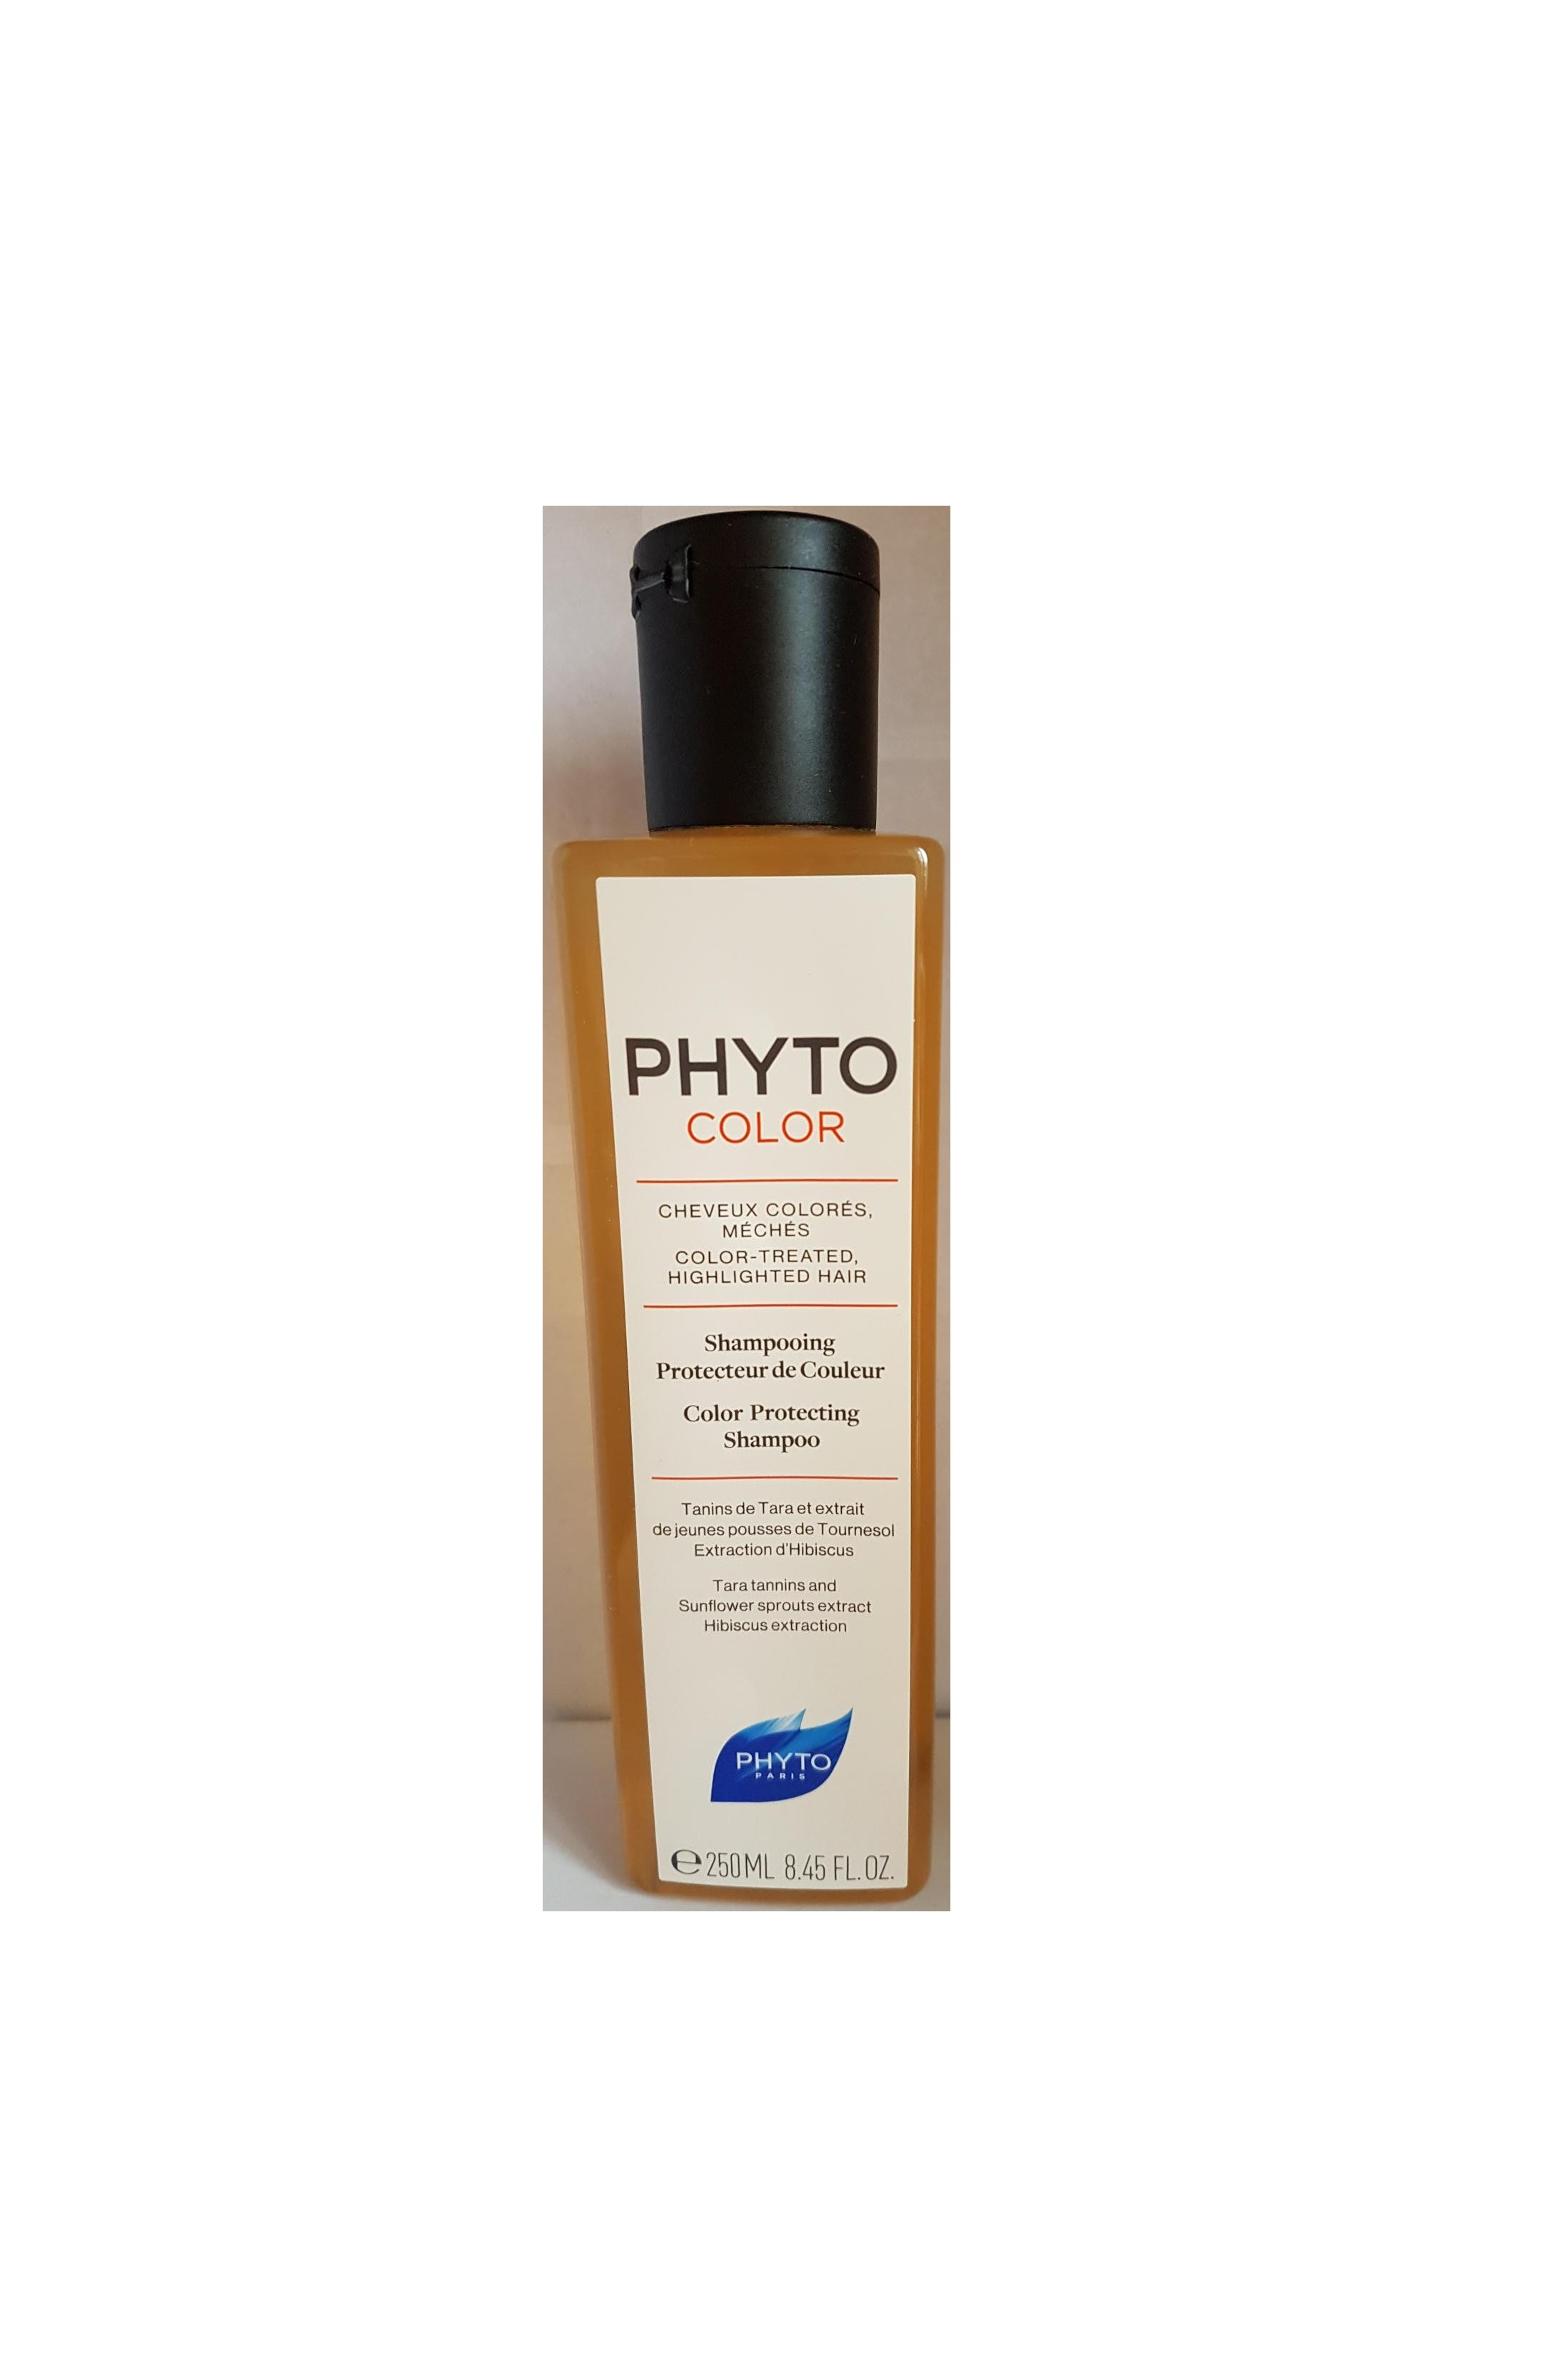 phyto-color-shampoo.jpg